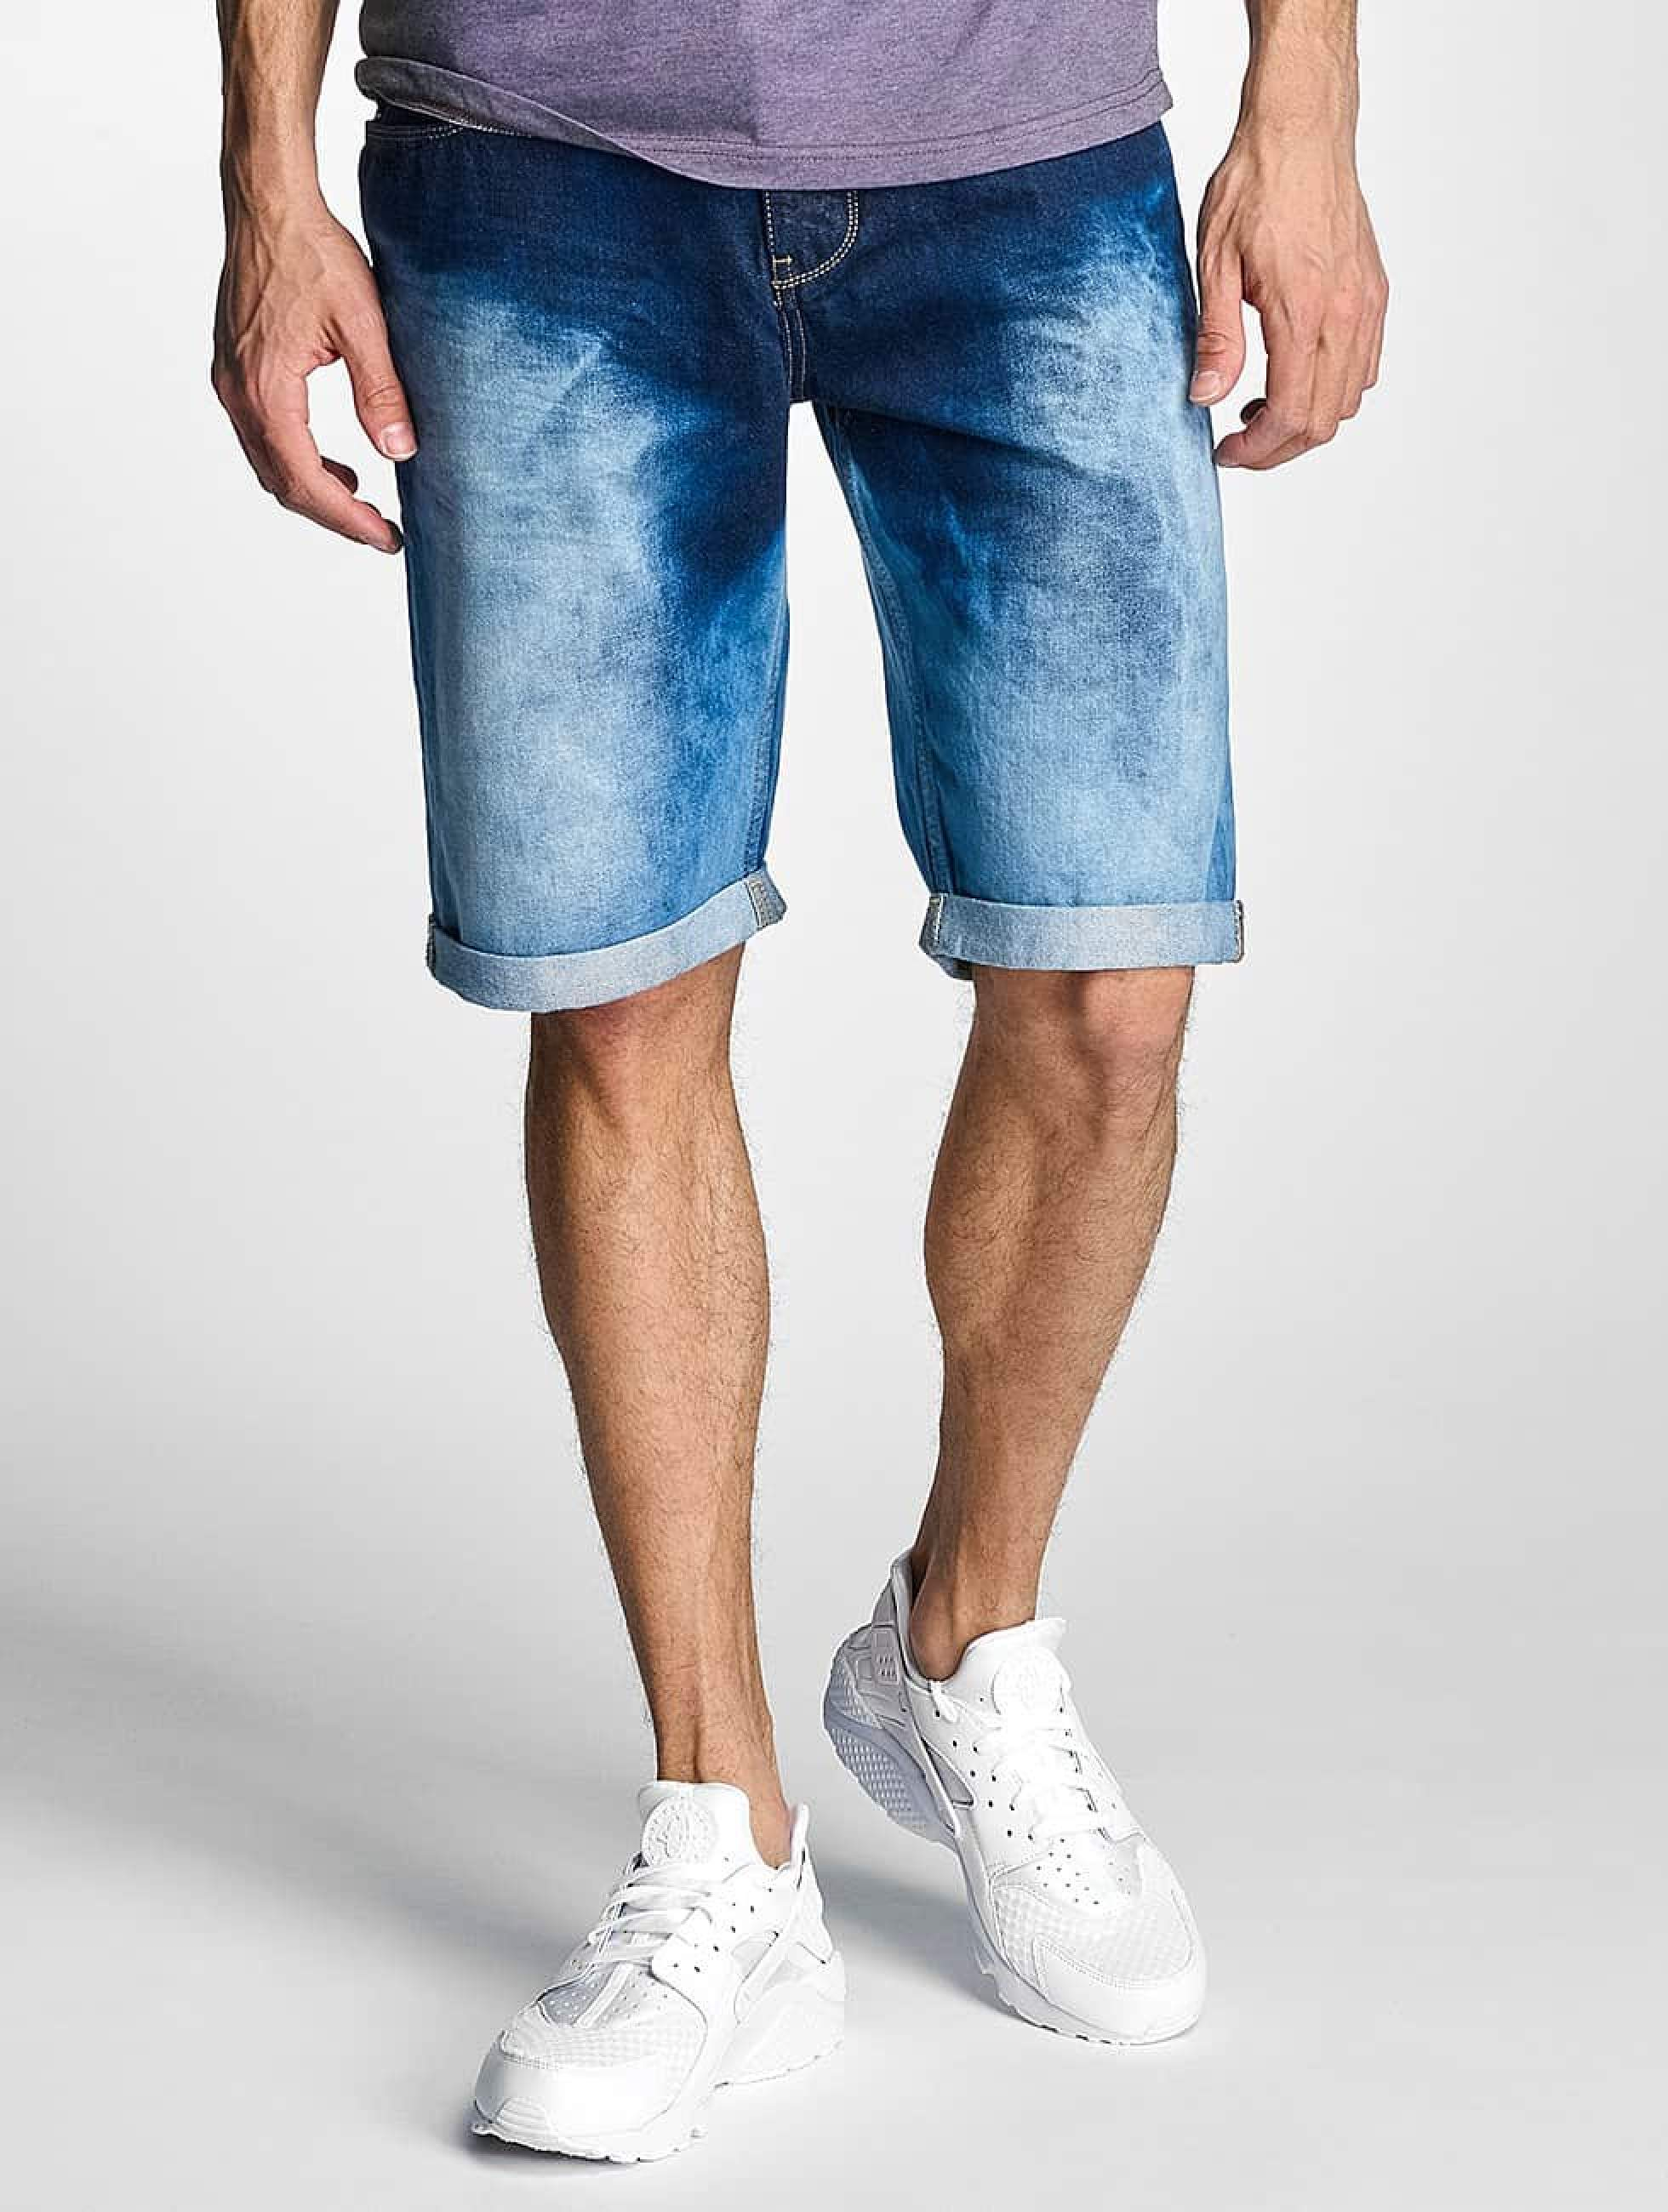 Just Rhyse / Short Dakar in blue XL